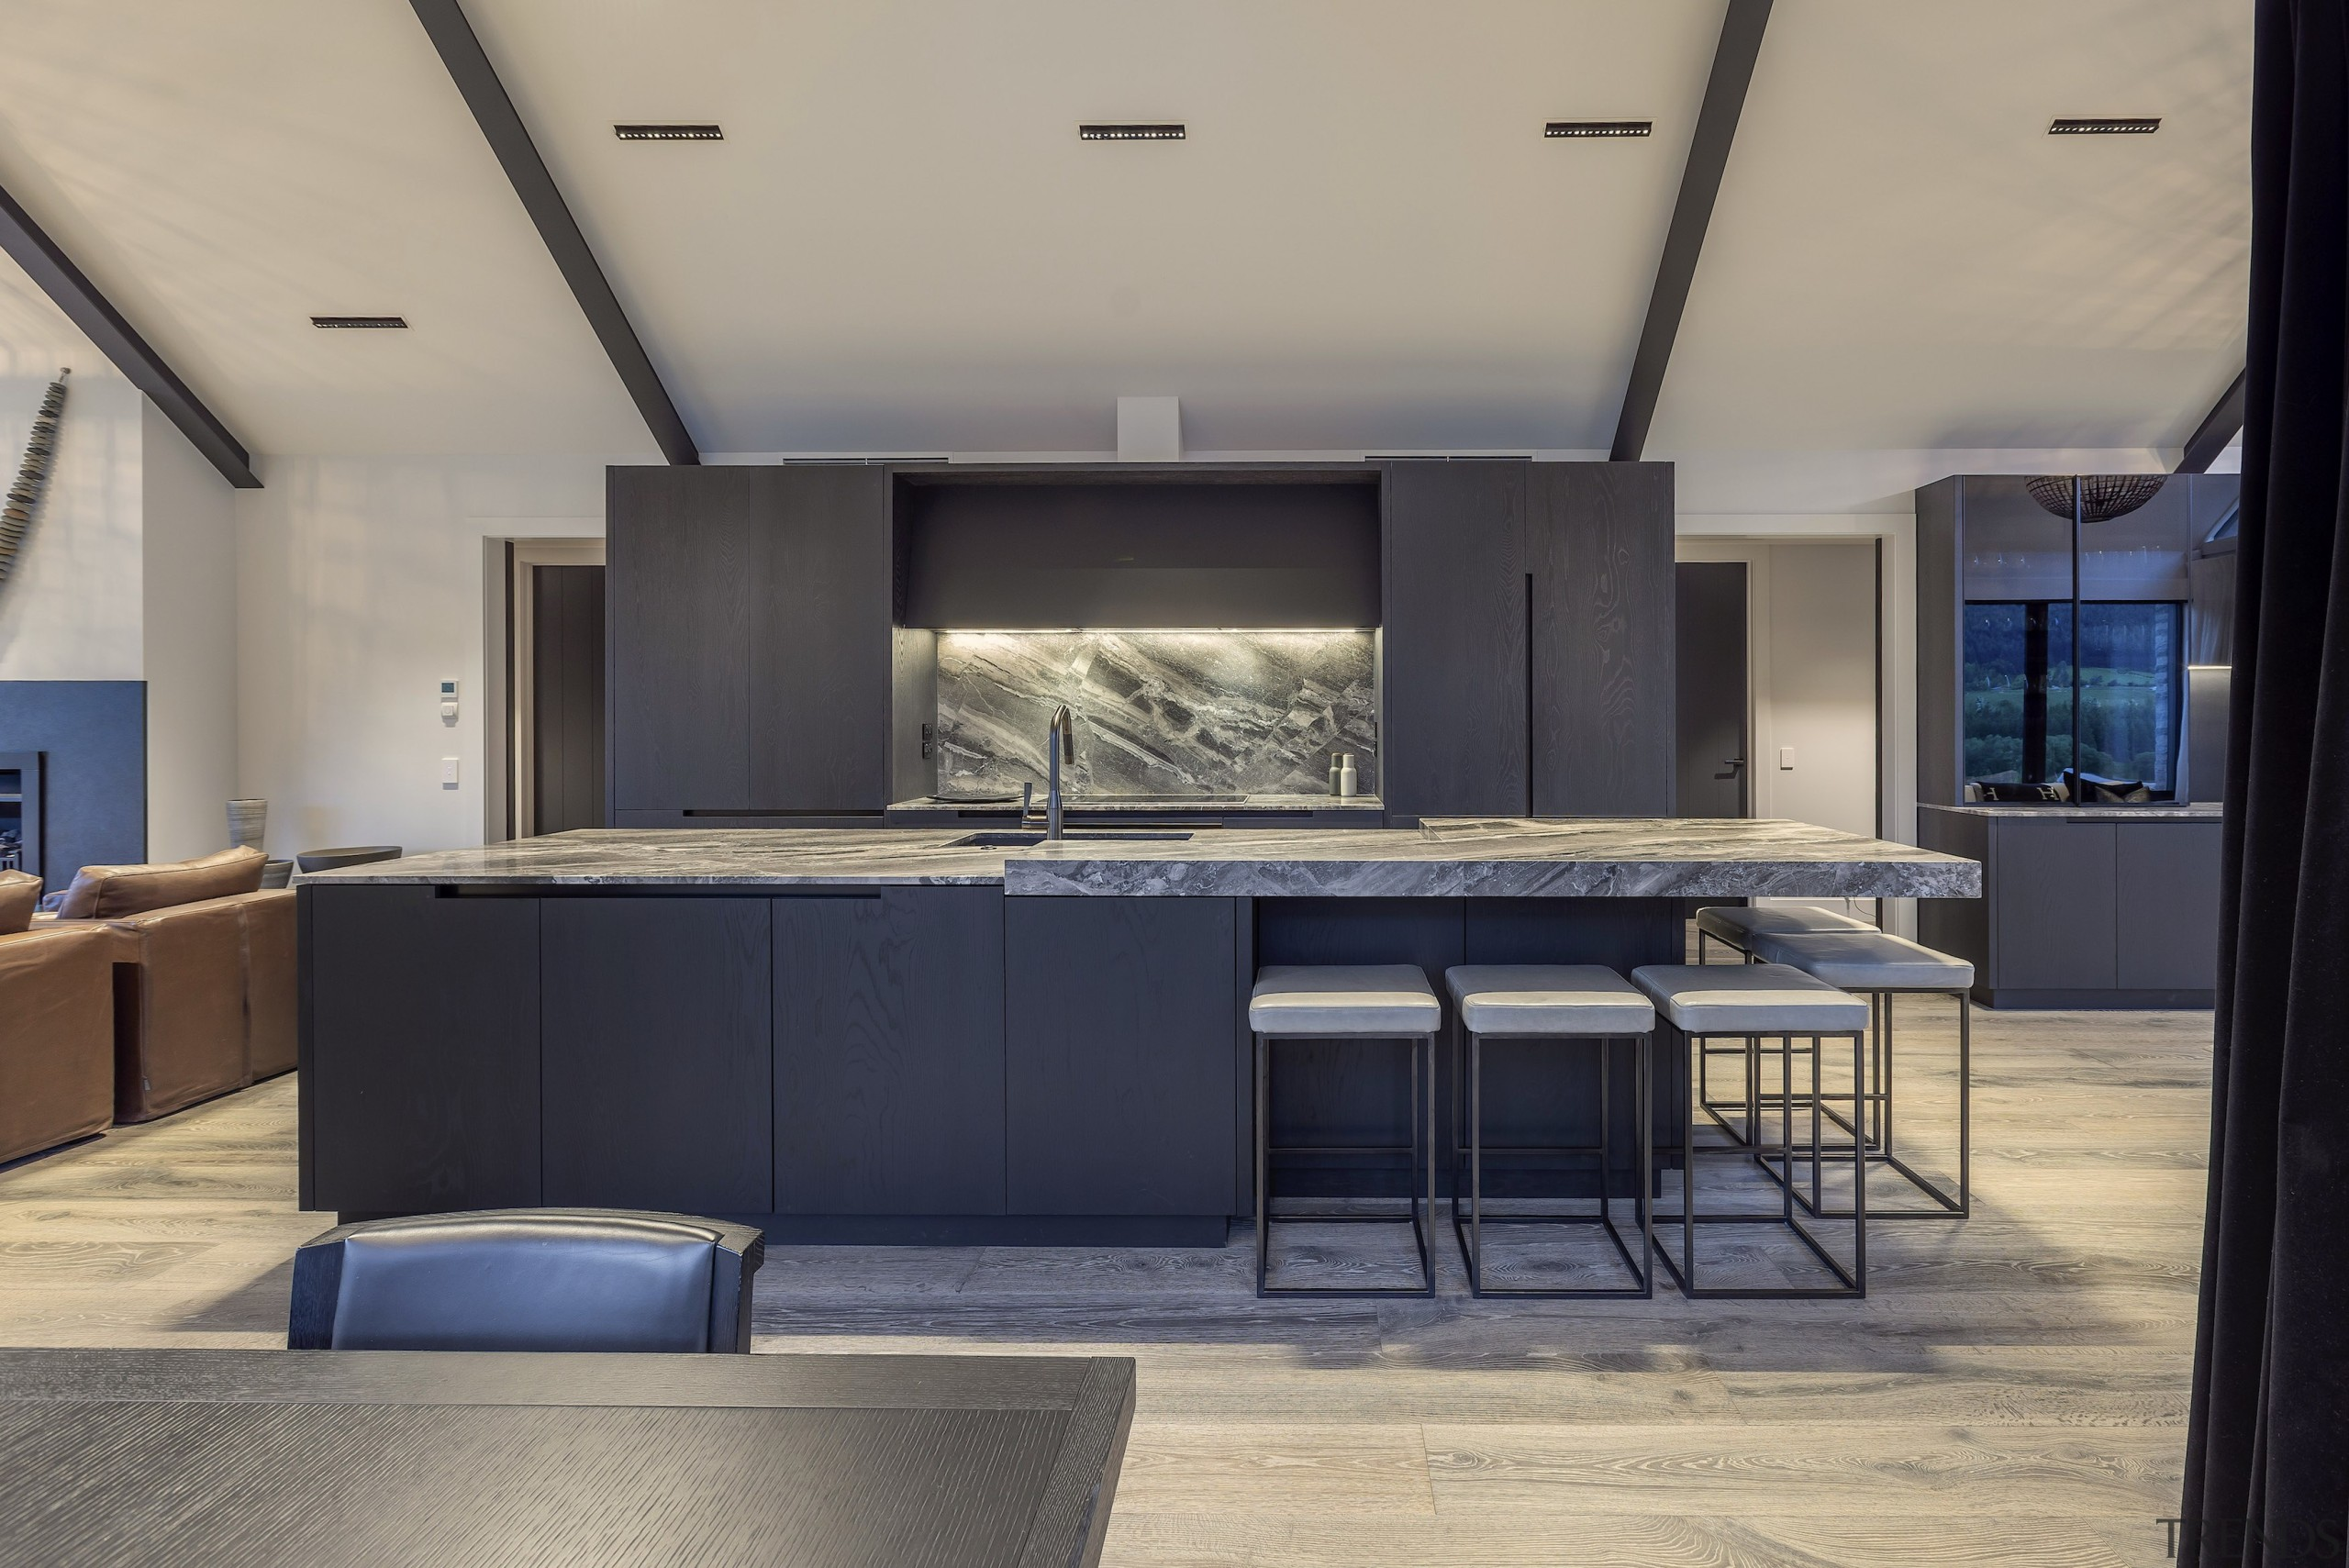 The owners wanted a classically modern kitchen at